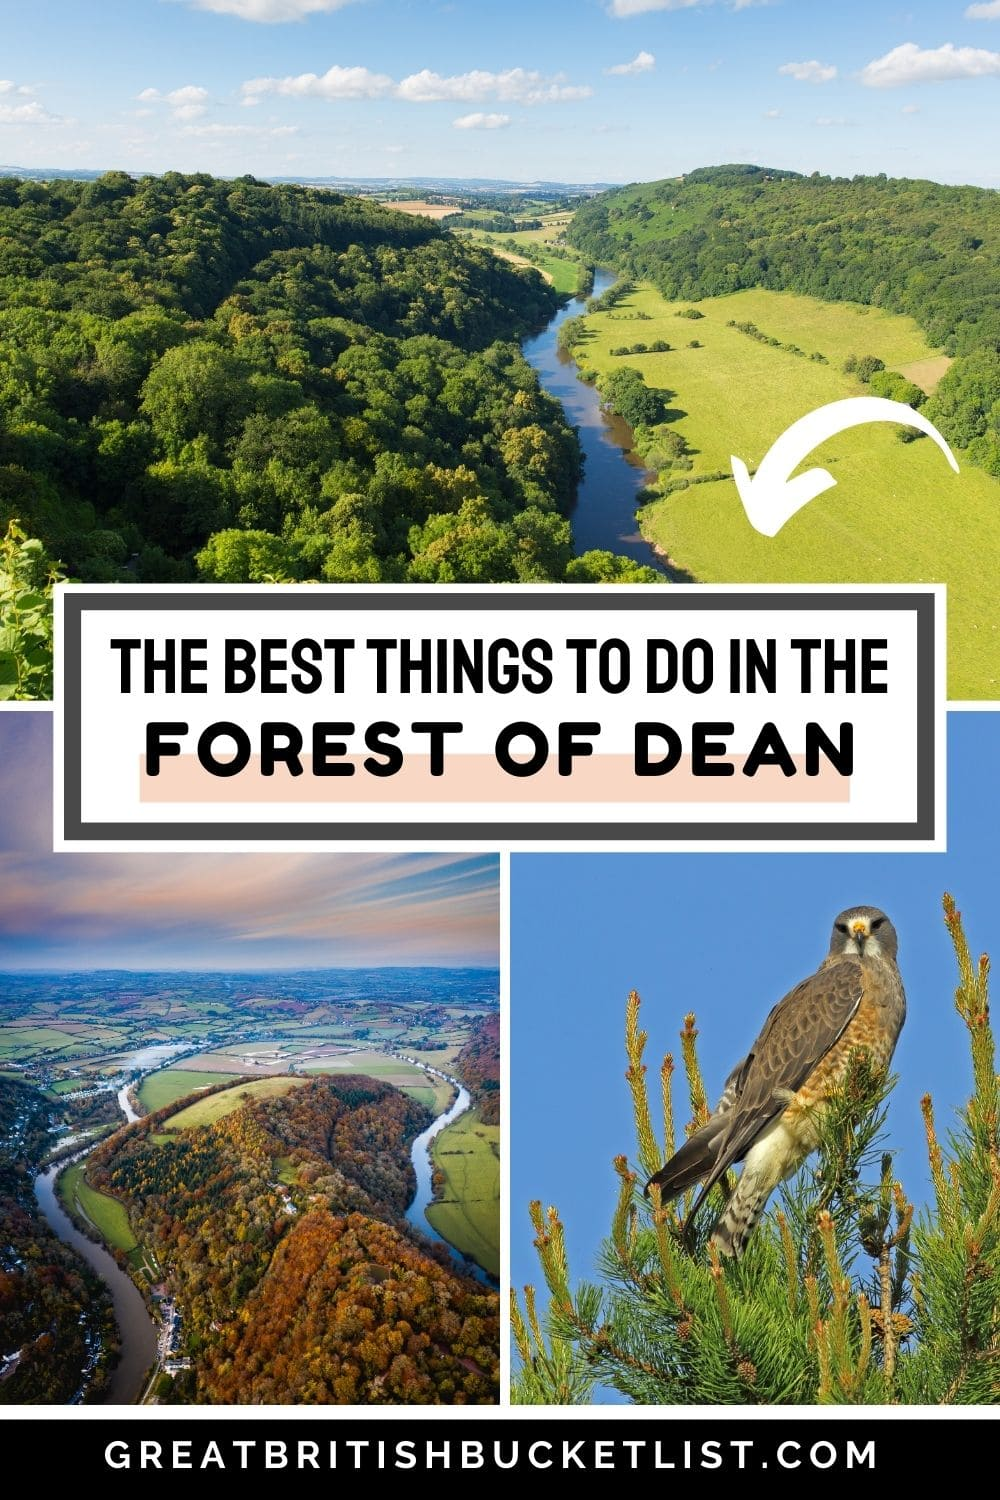 Things to do in the Forest of Dean